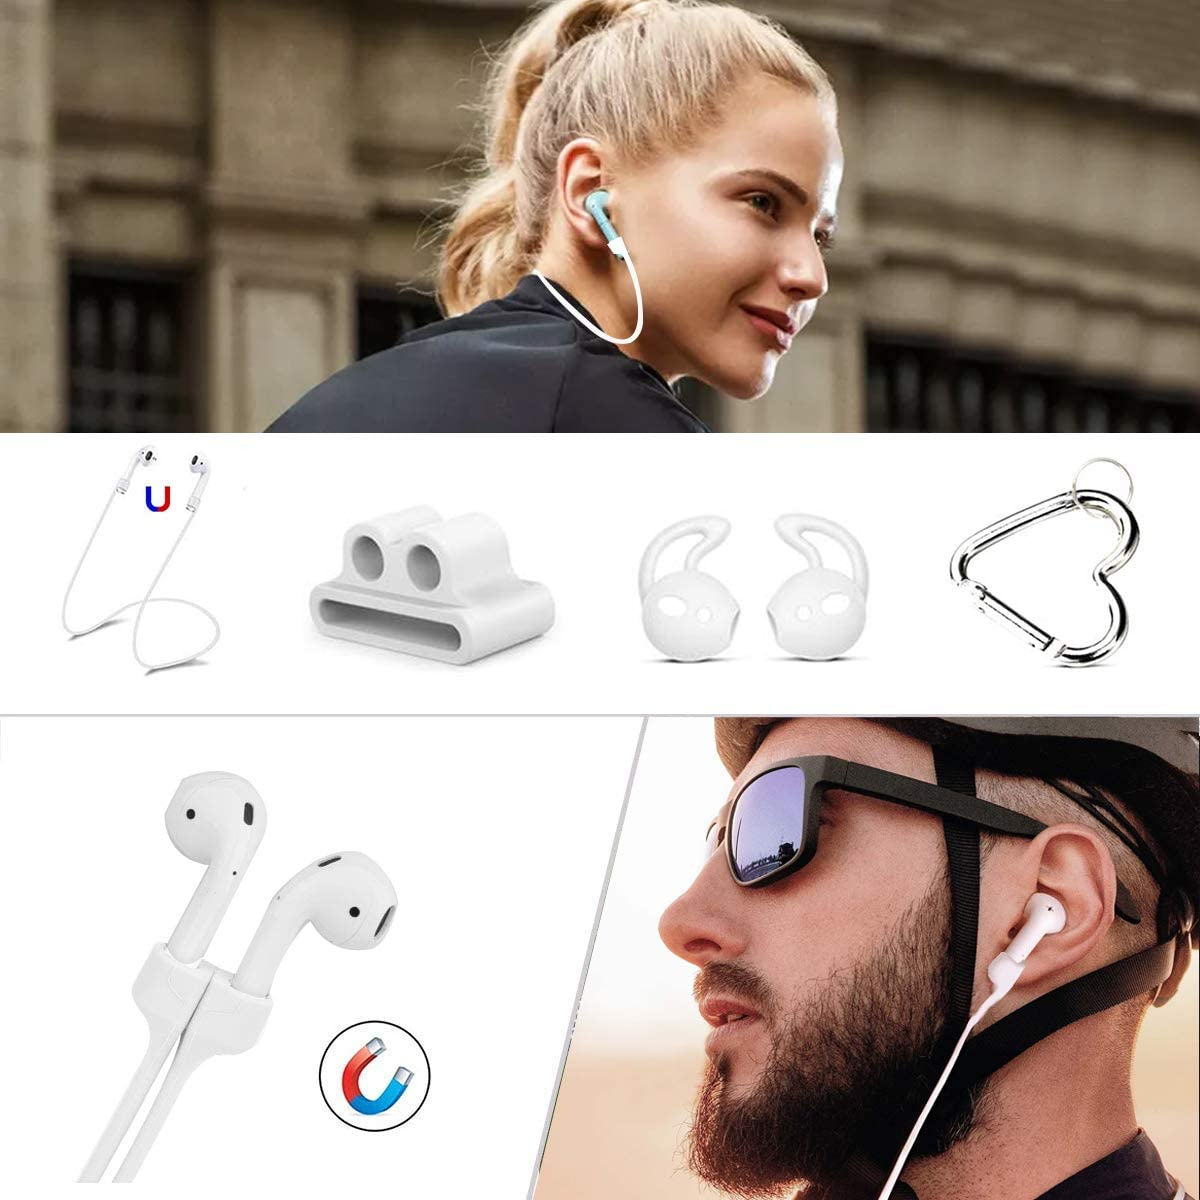 5 in 1 Cute Airpod Case Hard Protective Cover with Keychain//Strap//Earhooks//Watchband Holder Compatible Apple AirPods Wireless Charging Case 2/&1 for Girls Women,Flower Green Maxjoy AirPods Case Cover